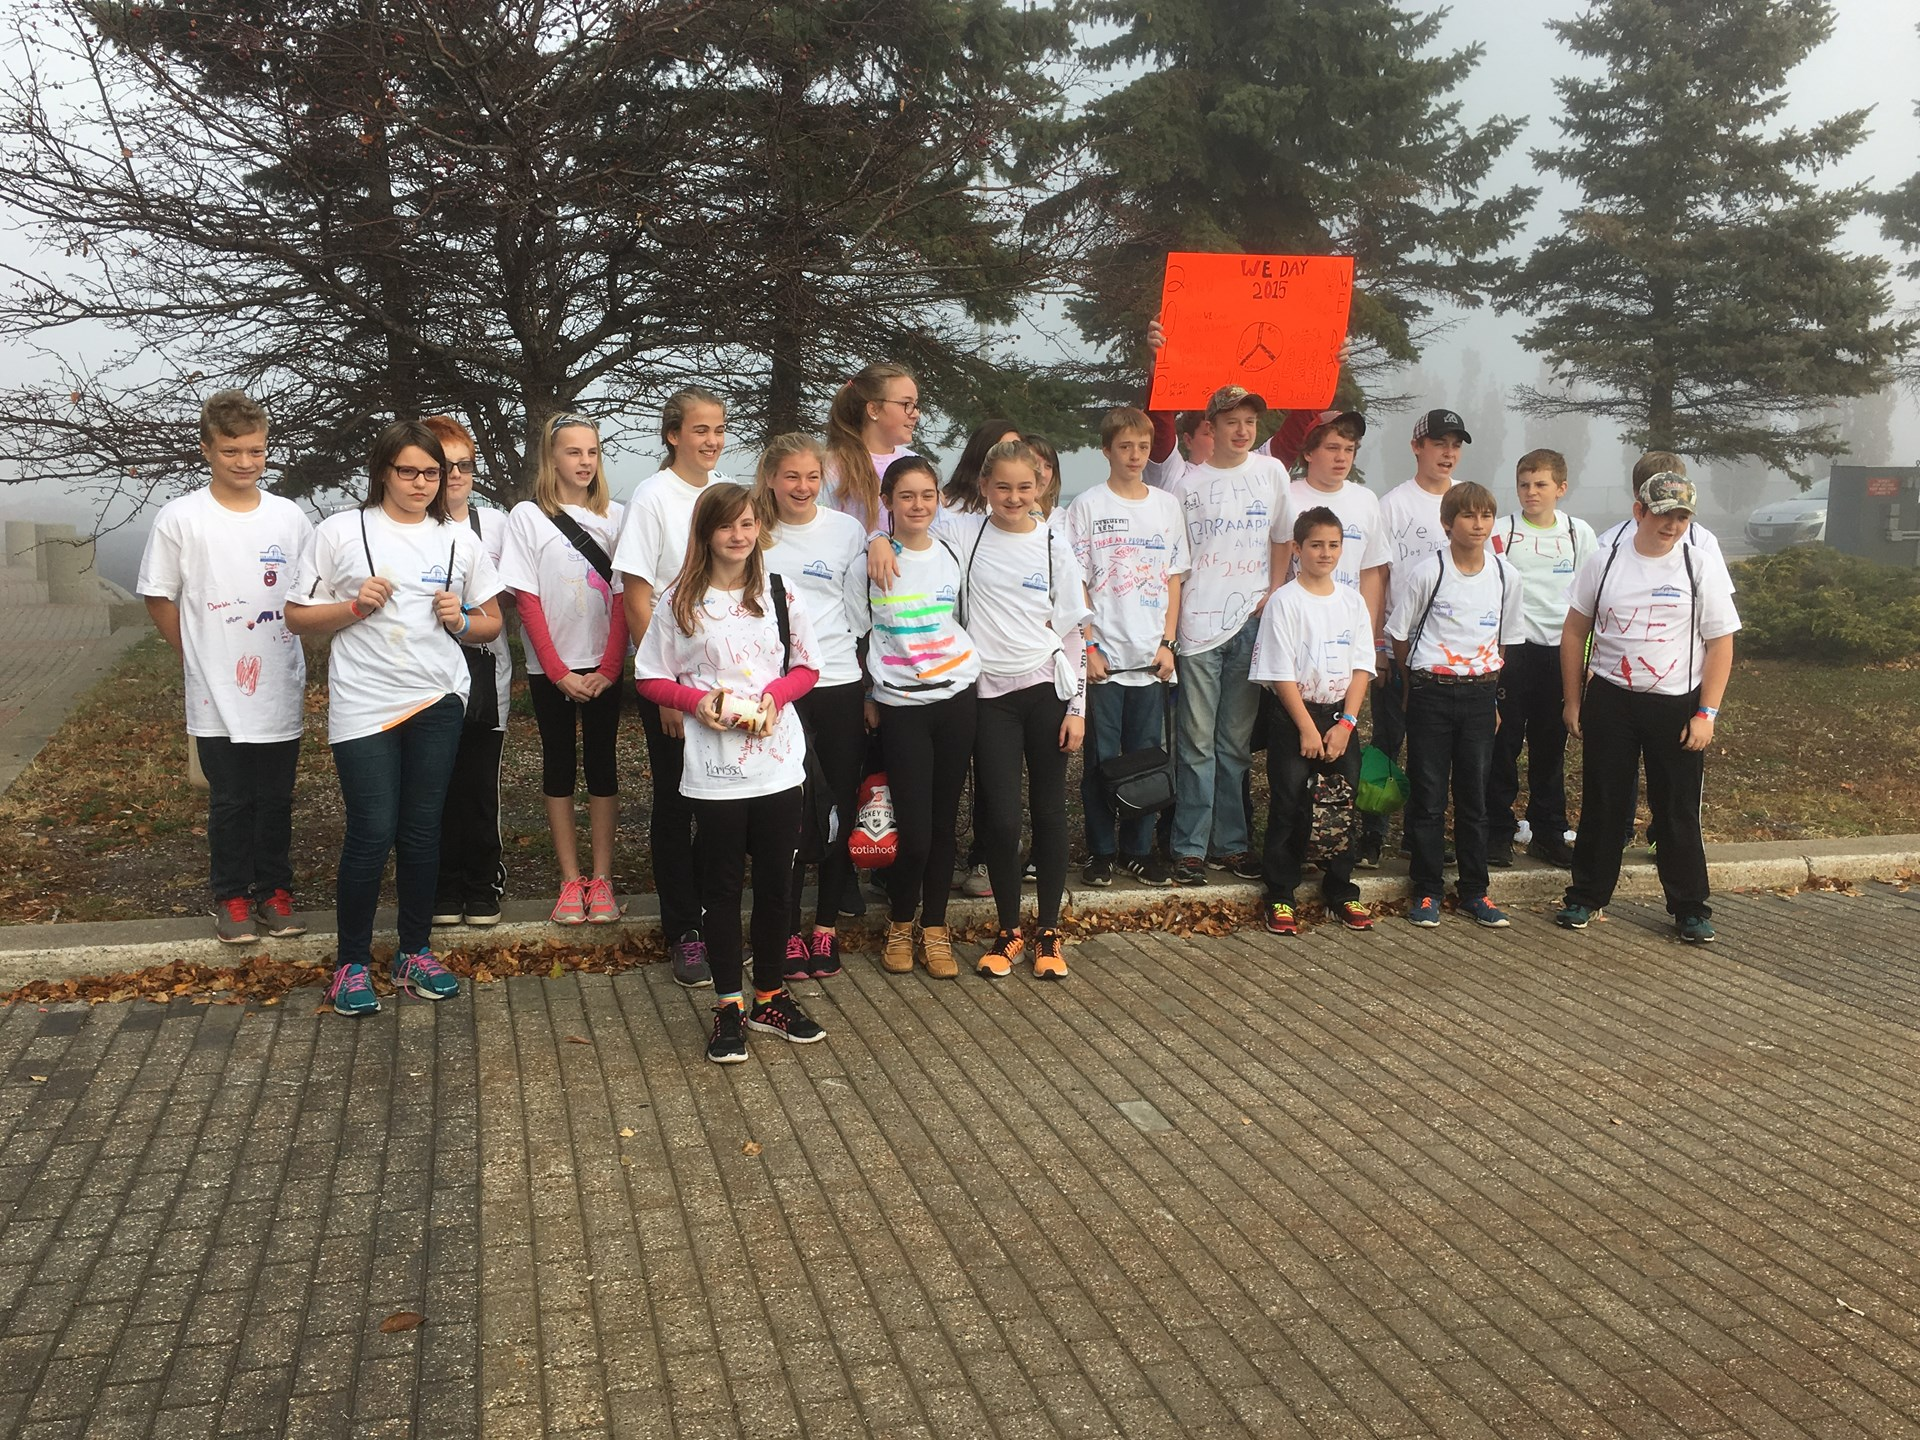 Grade 7/8 students who went to We Day